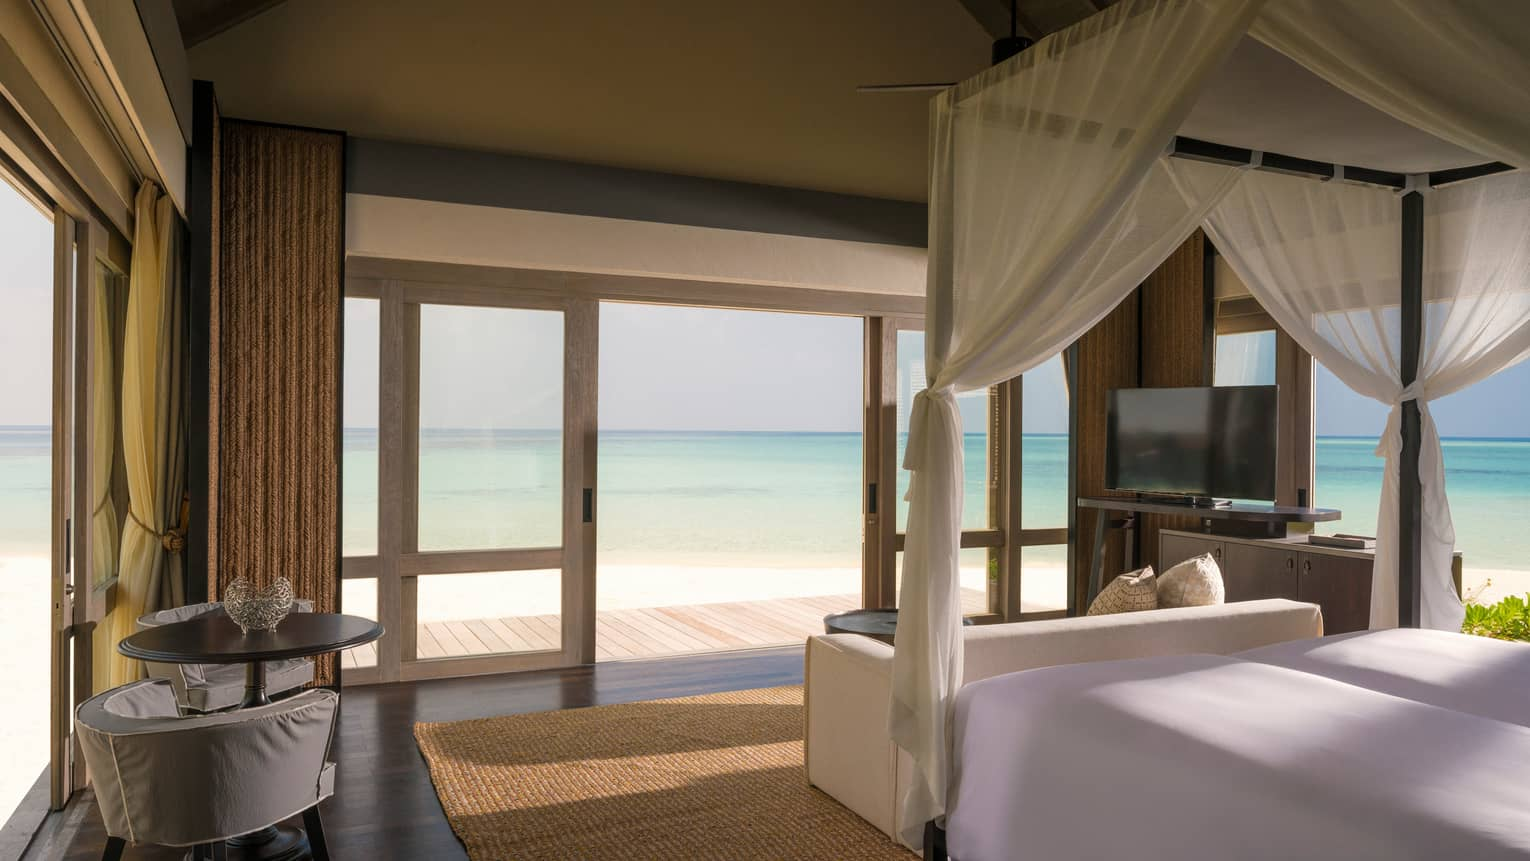 Beach Villa bedroom with white canopy bed by sliding doors to patio, lagoon views